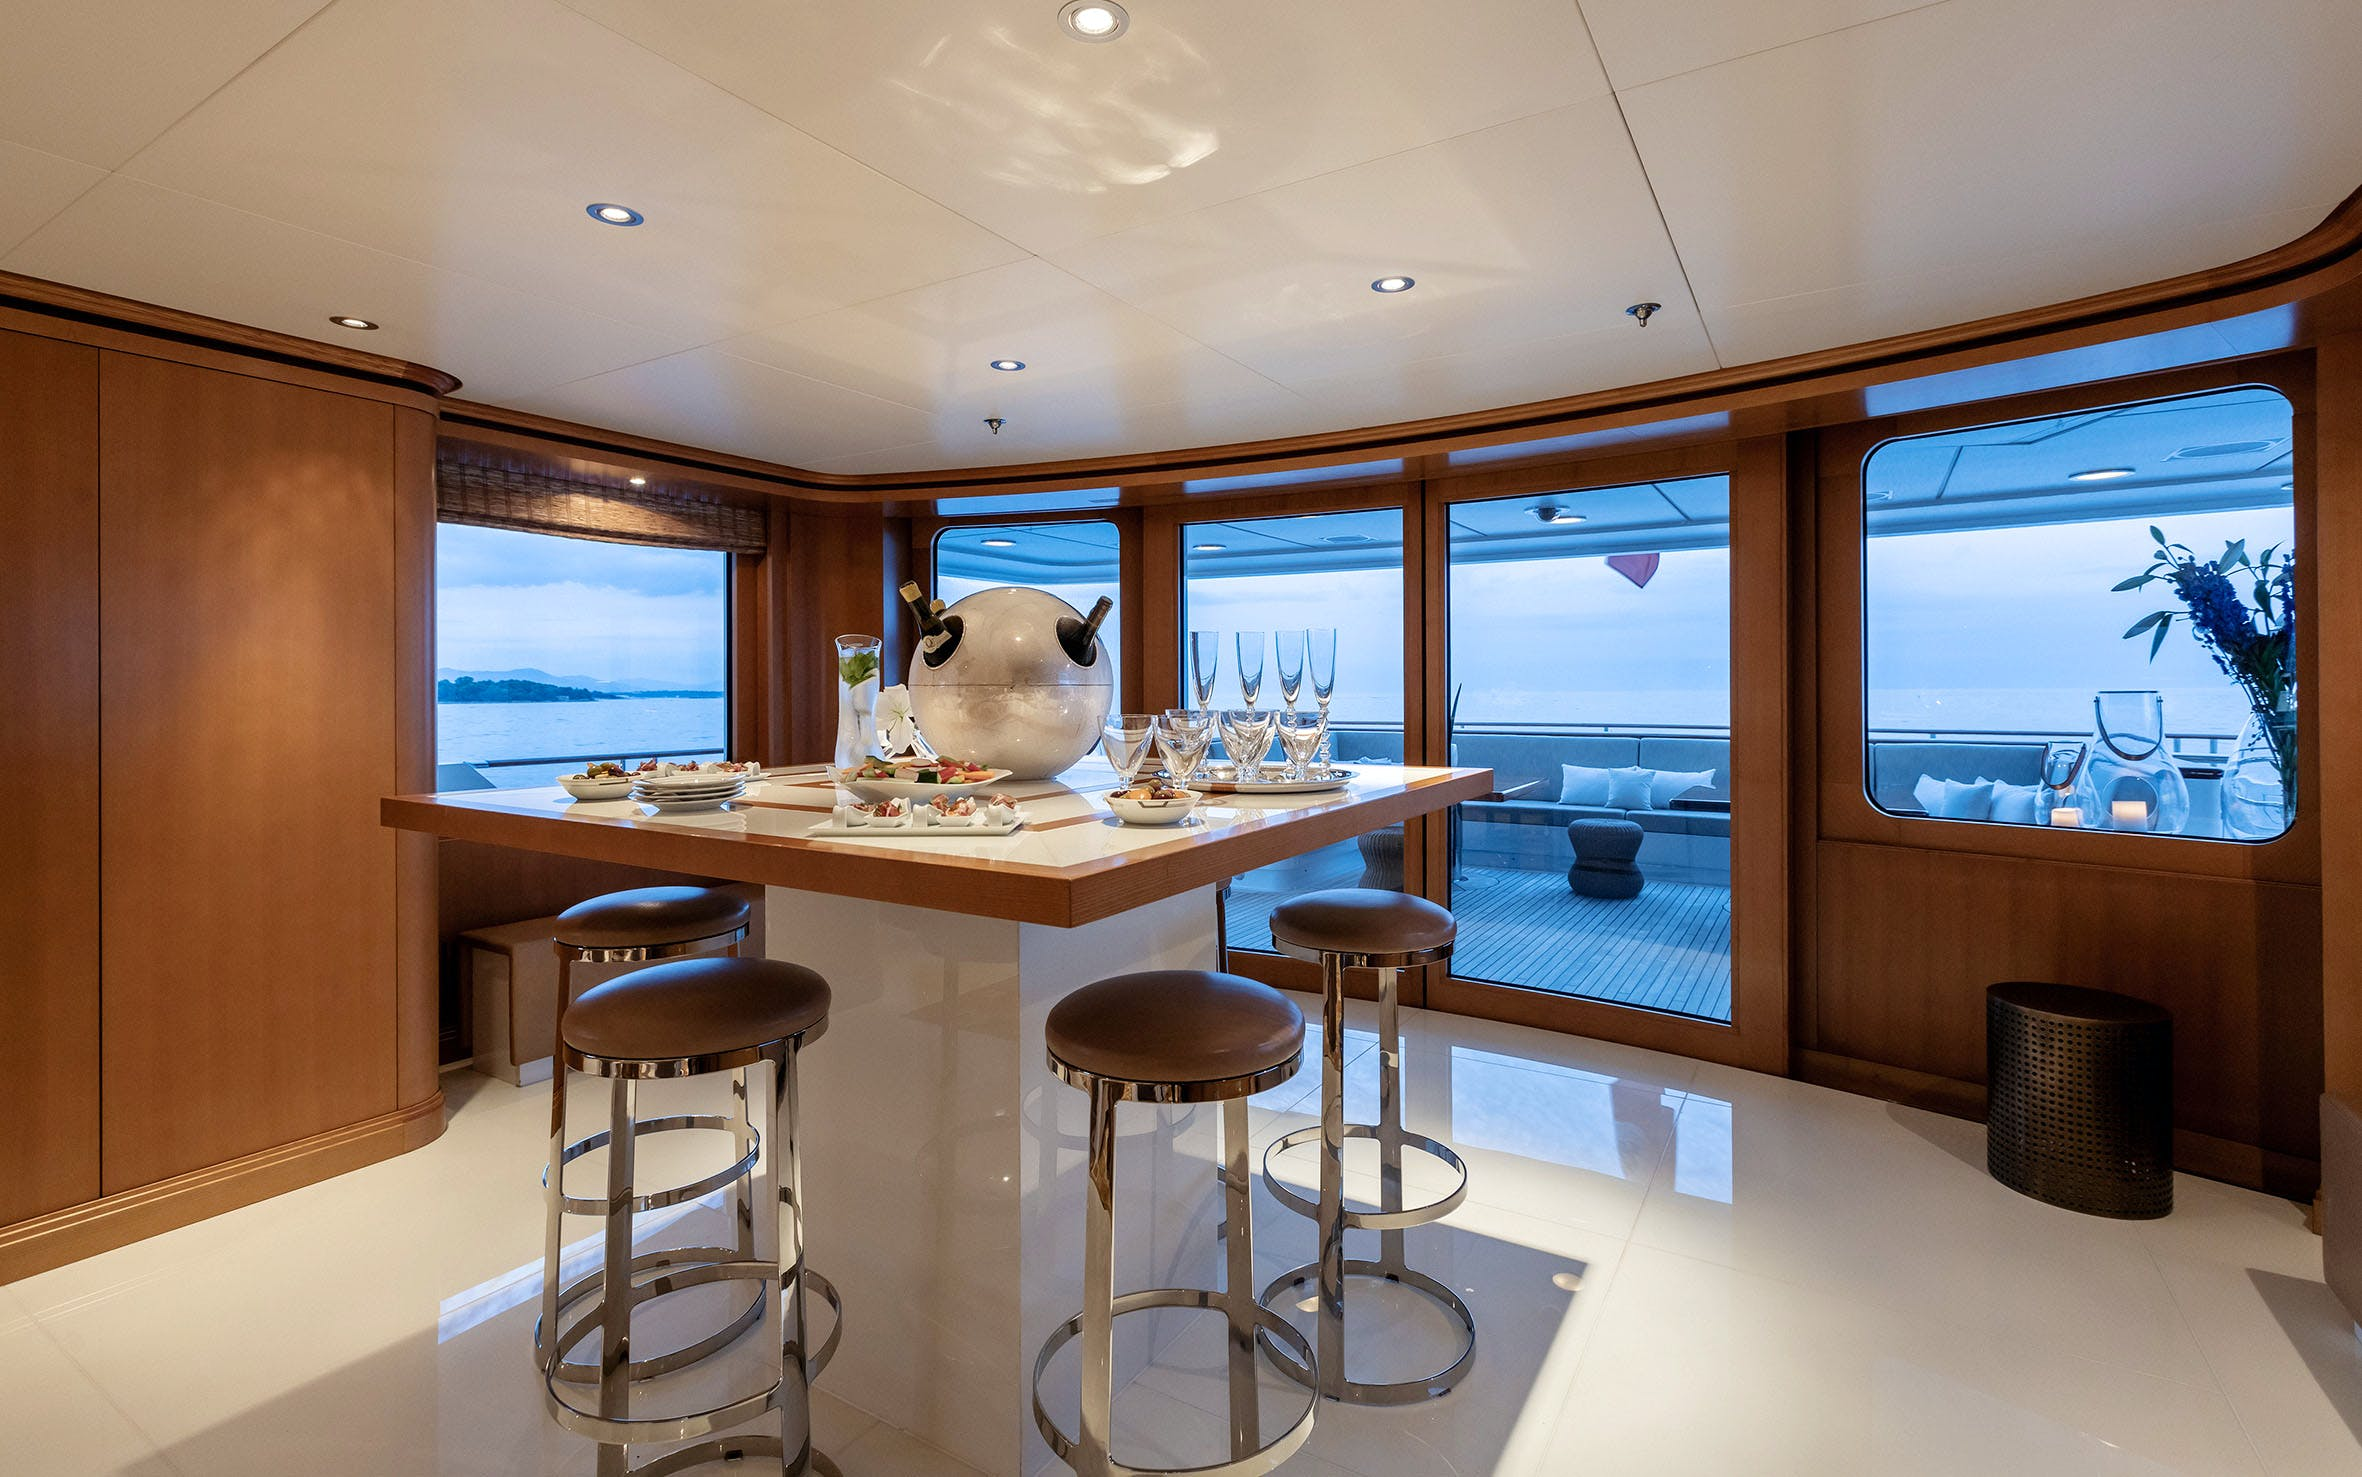 Seasonal Rates for HELIOS Private Luxury Yacht For Charter